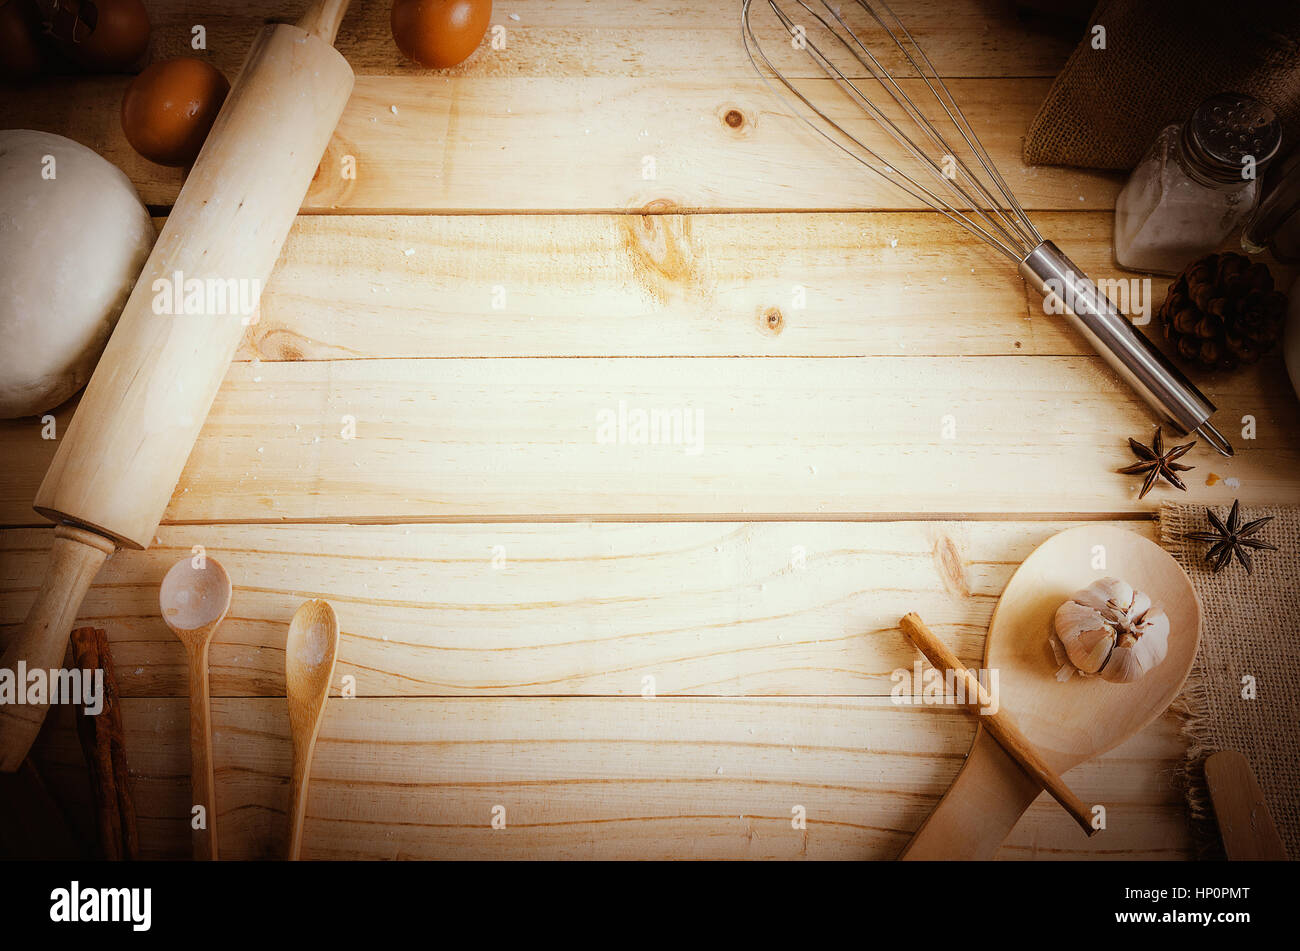 blank wooden table background and bakery ingredients with